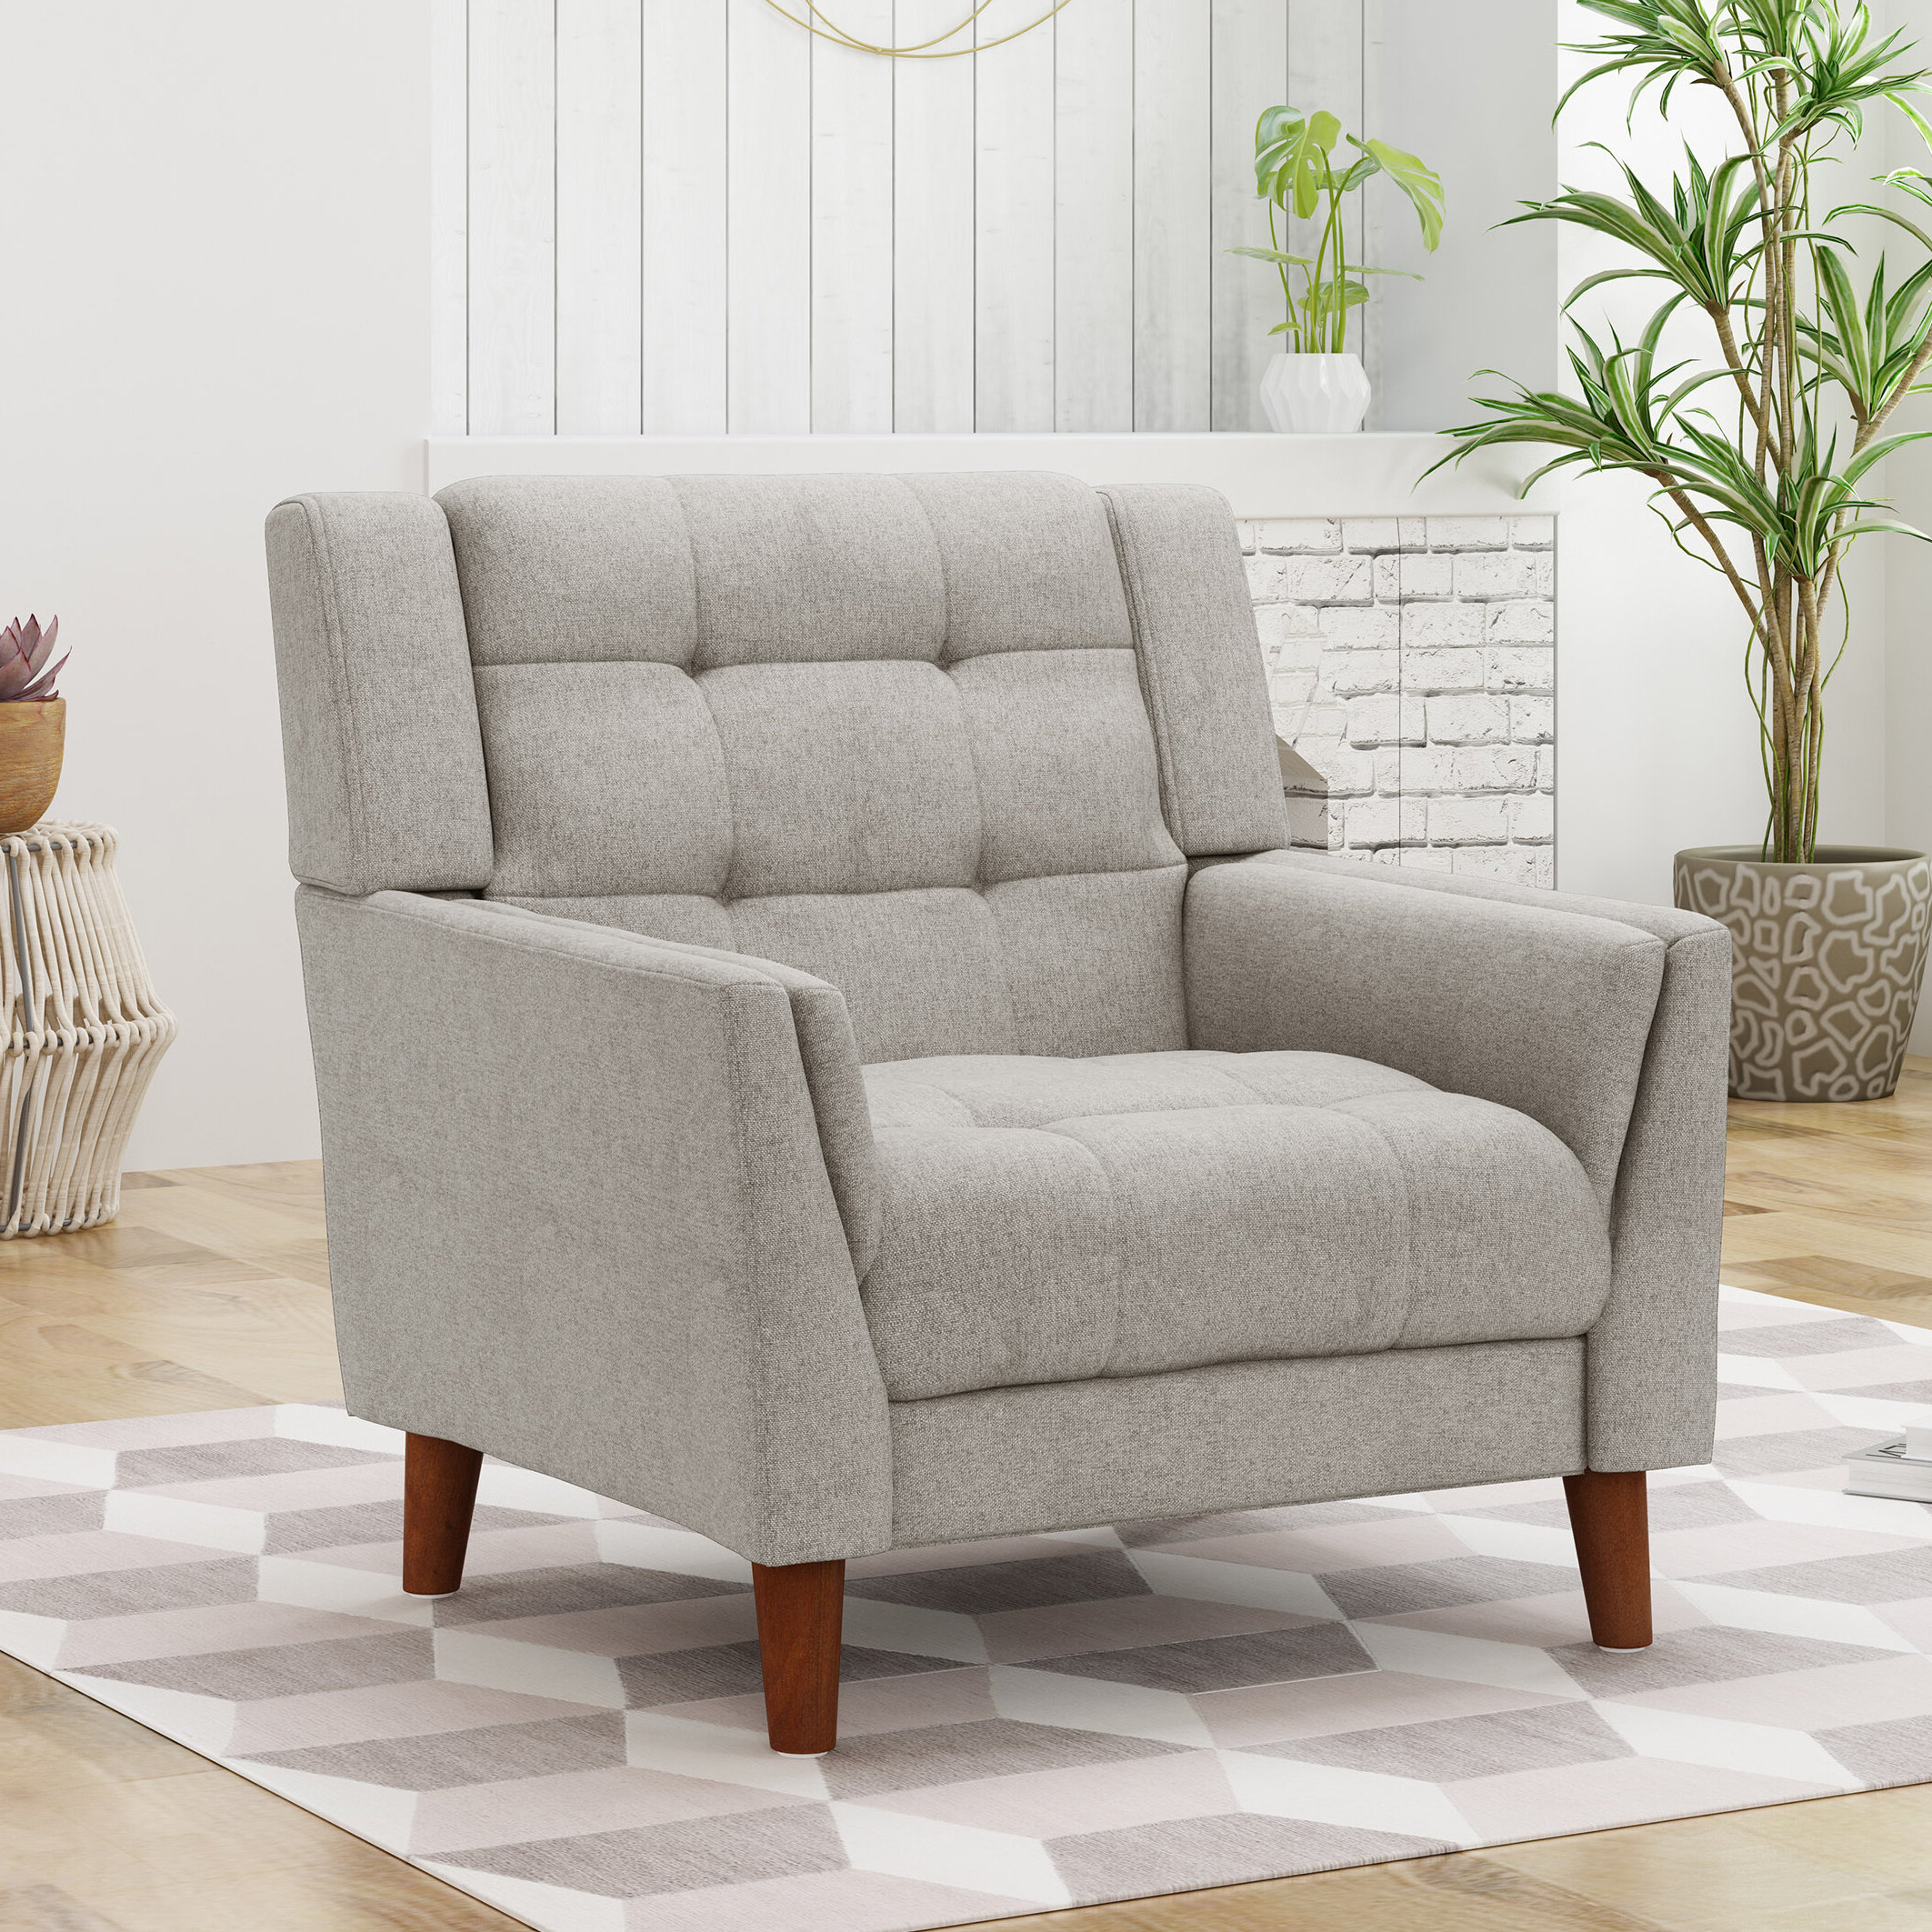 Current Ulises Armchair Intended For Belz Tufted Polyester Armchairs (View 20 of 20)